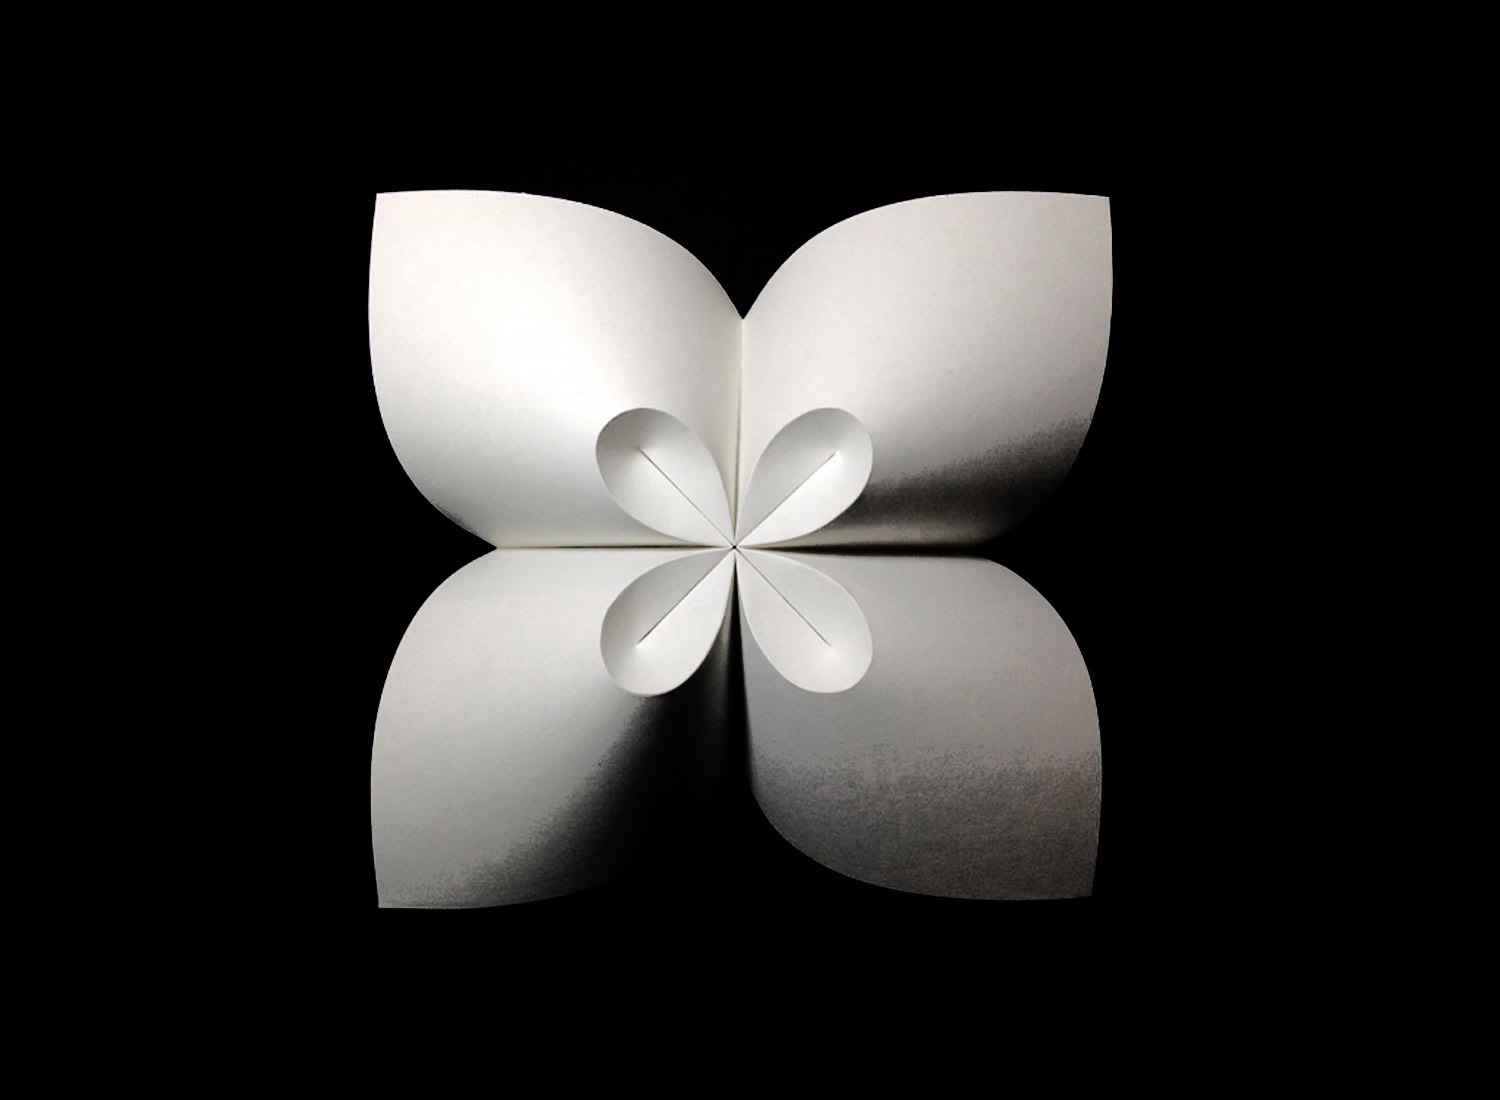 white cloverleaf origami by robby kraft, inspired by David Huffman